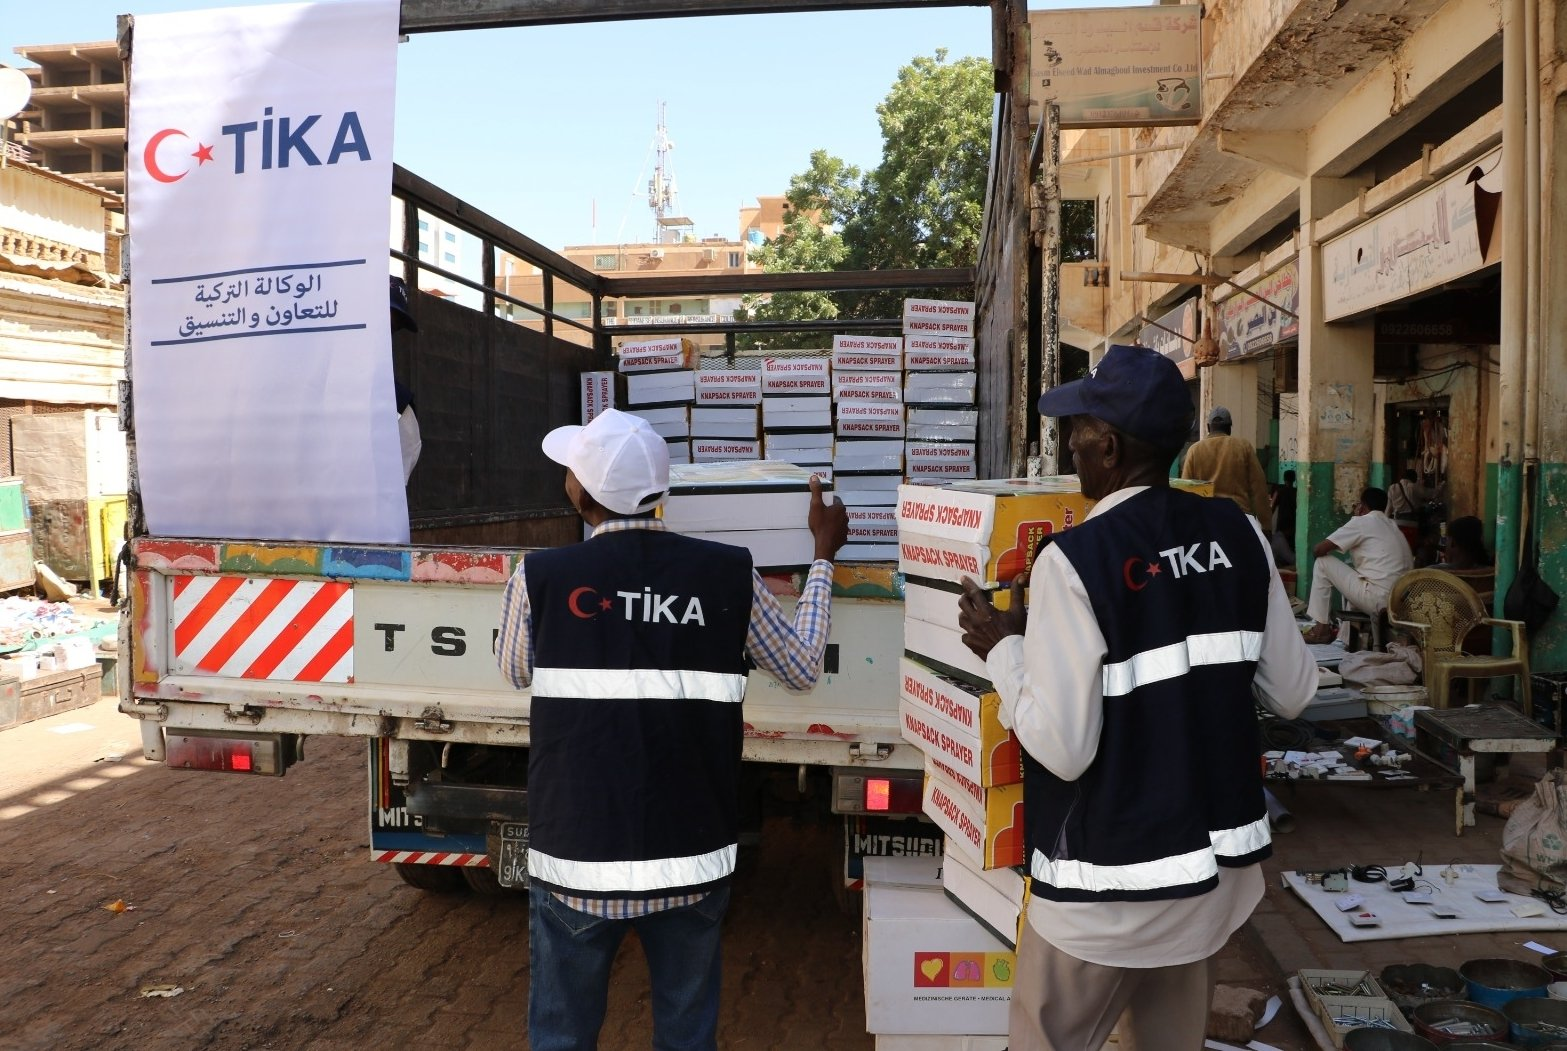 TIKA volunteers unload a truck filled with personal protective equipment (PPE) and medical supplies, in Khartoum, Sudan, Dec. 13, 2020. (AA Photo)